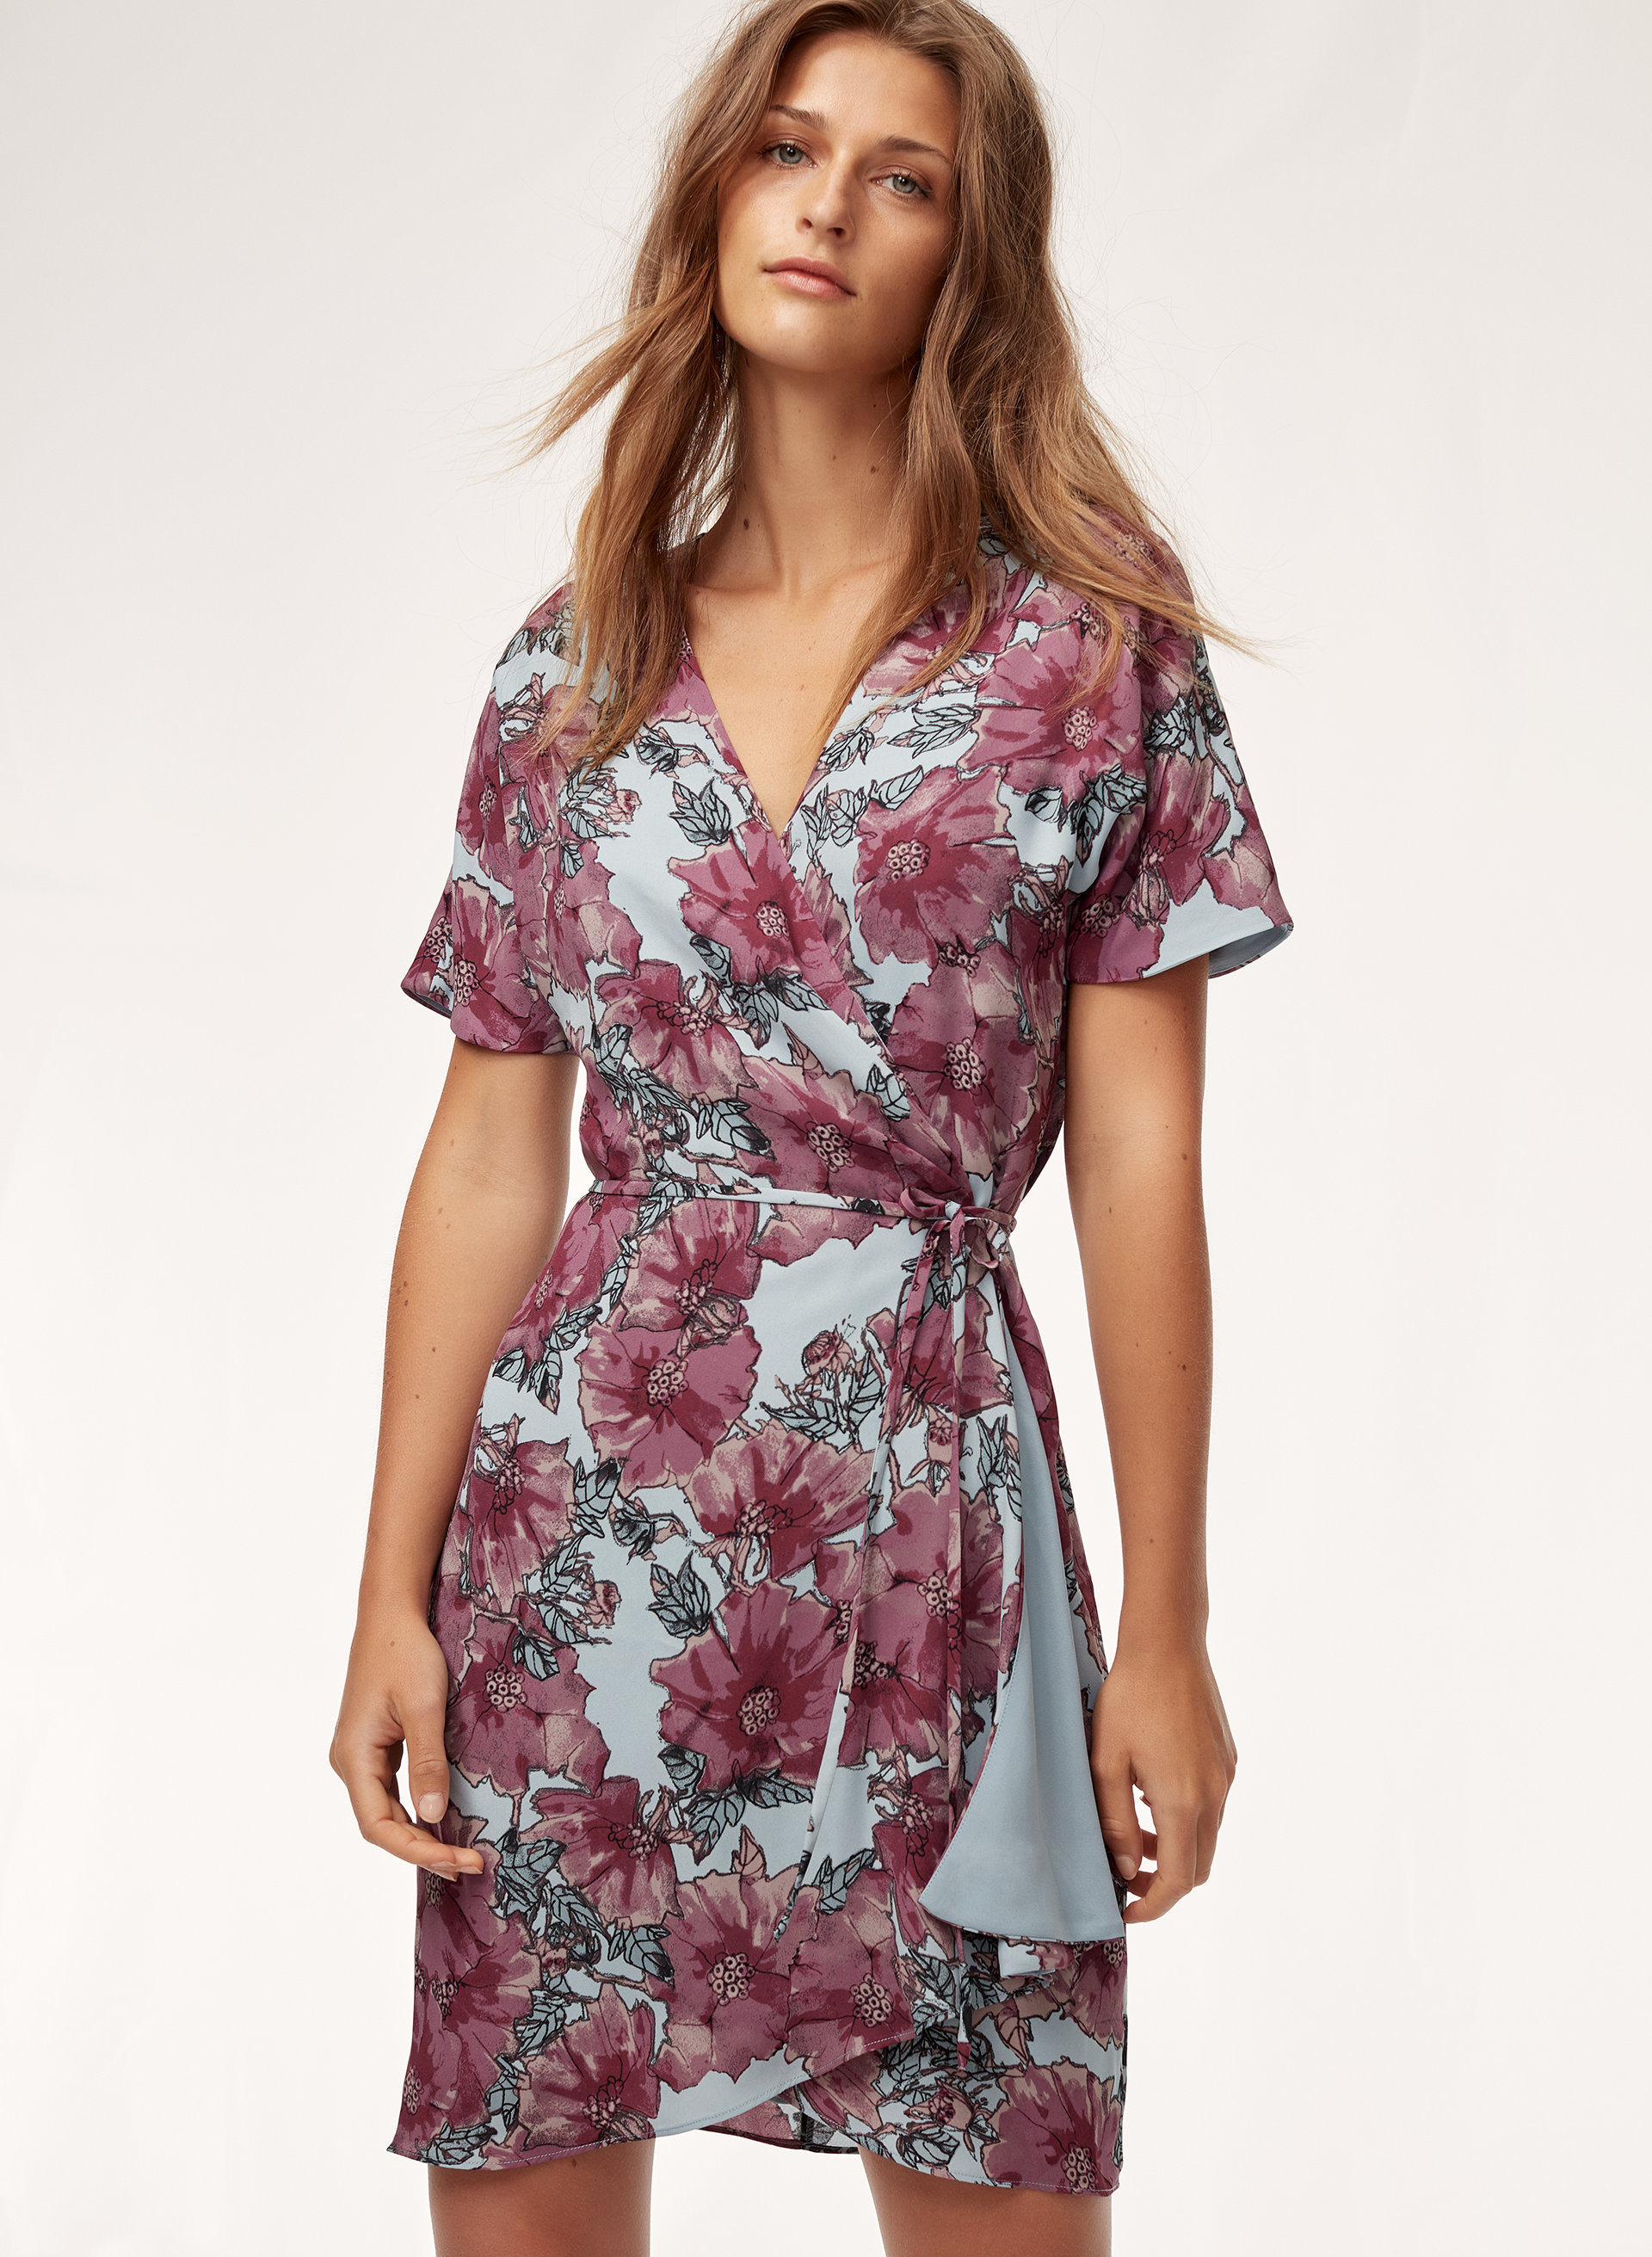 6394a5ed154 Black Floral Short Sleeve Wrap Dress - Data Dynamic AG